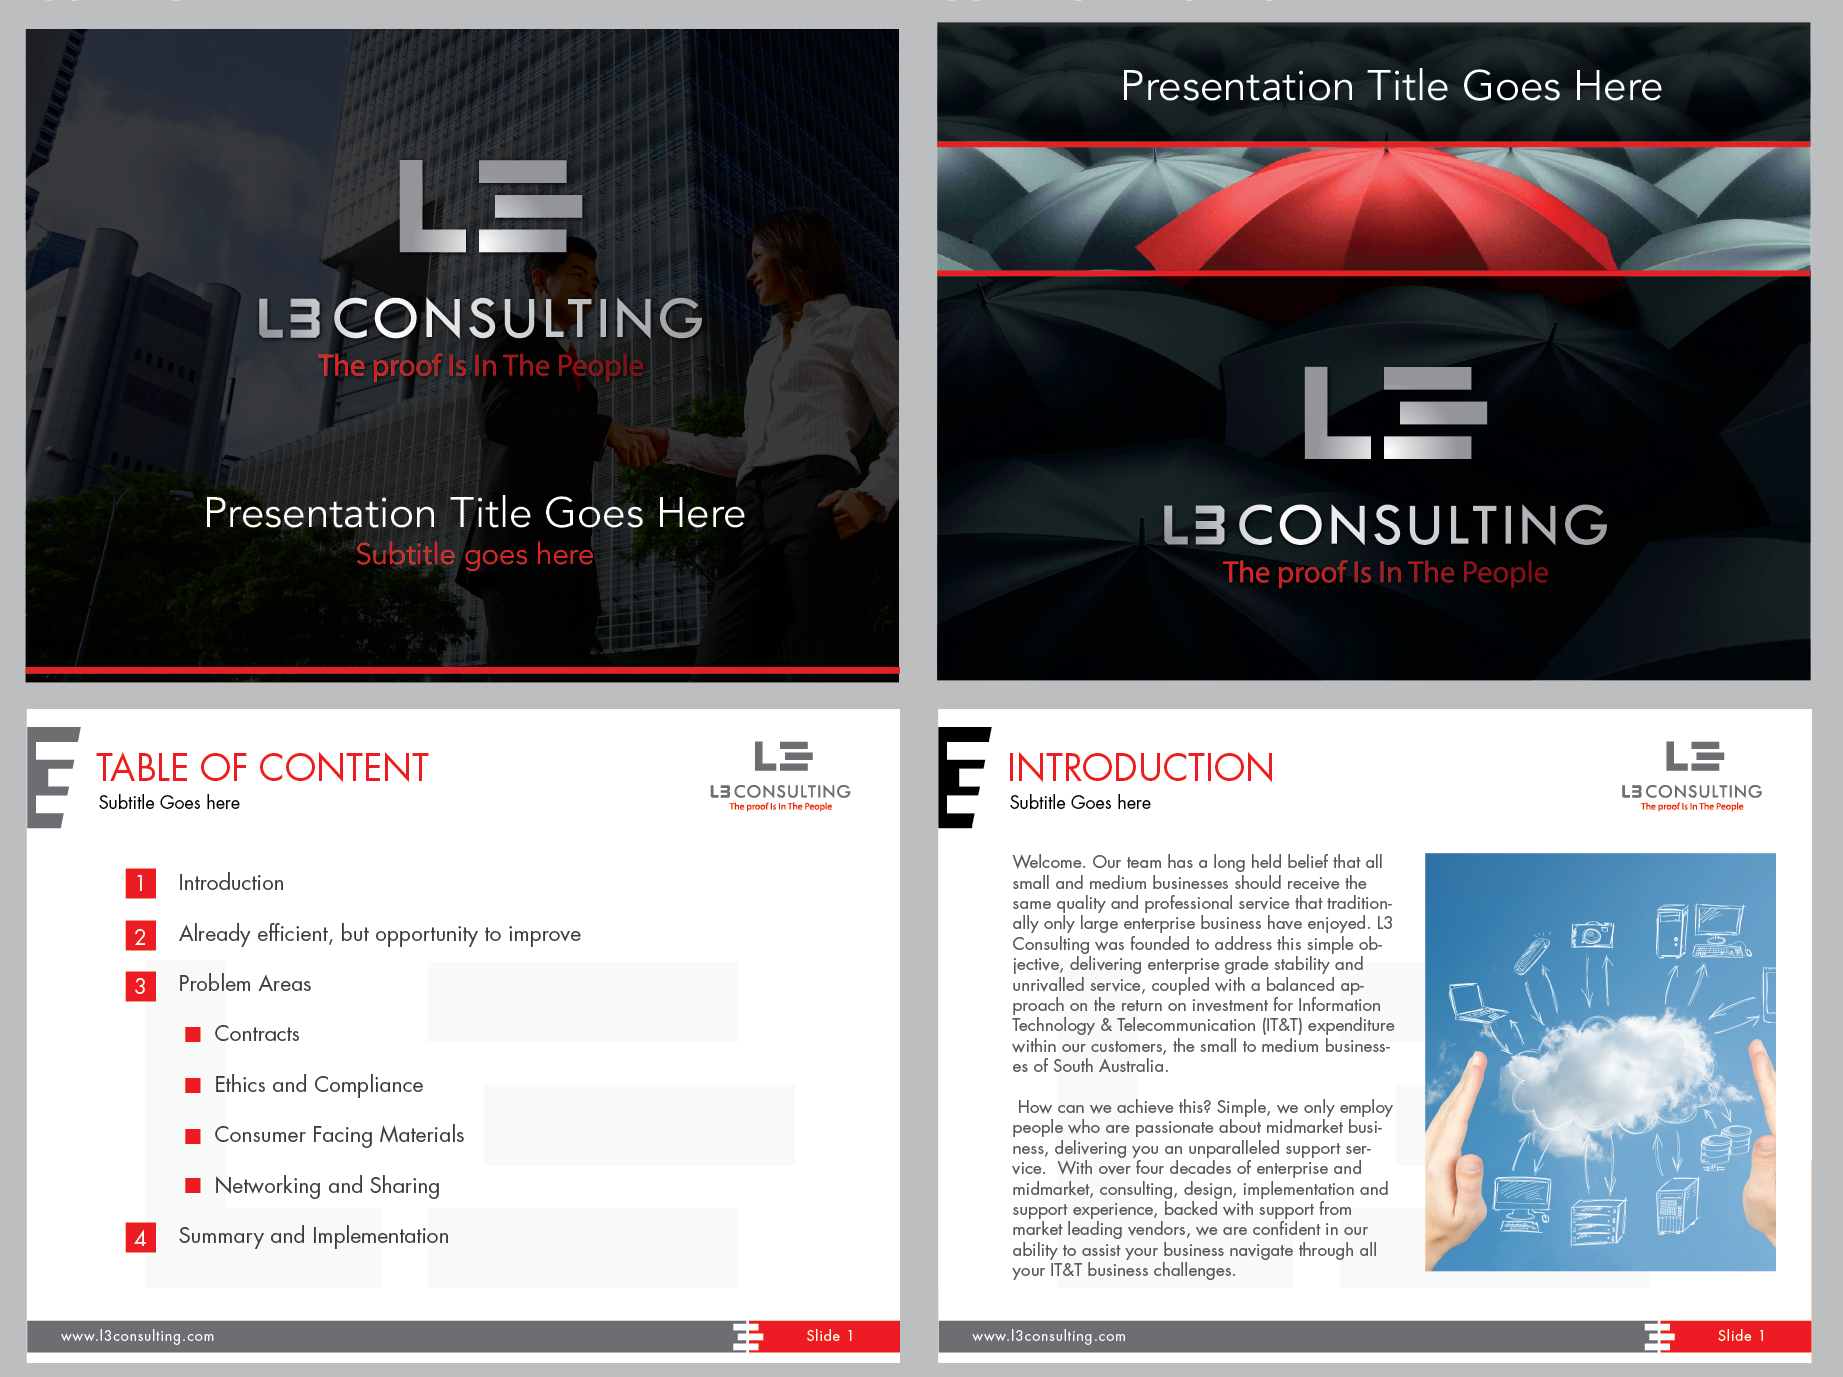 CORPORATE POWERPOINT PRESENTATION BLACK BACKGROUND, RED ACCENTS